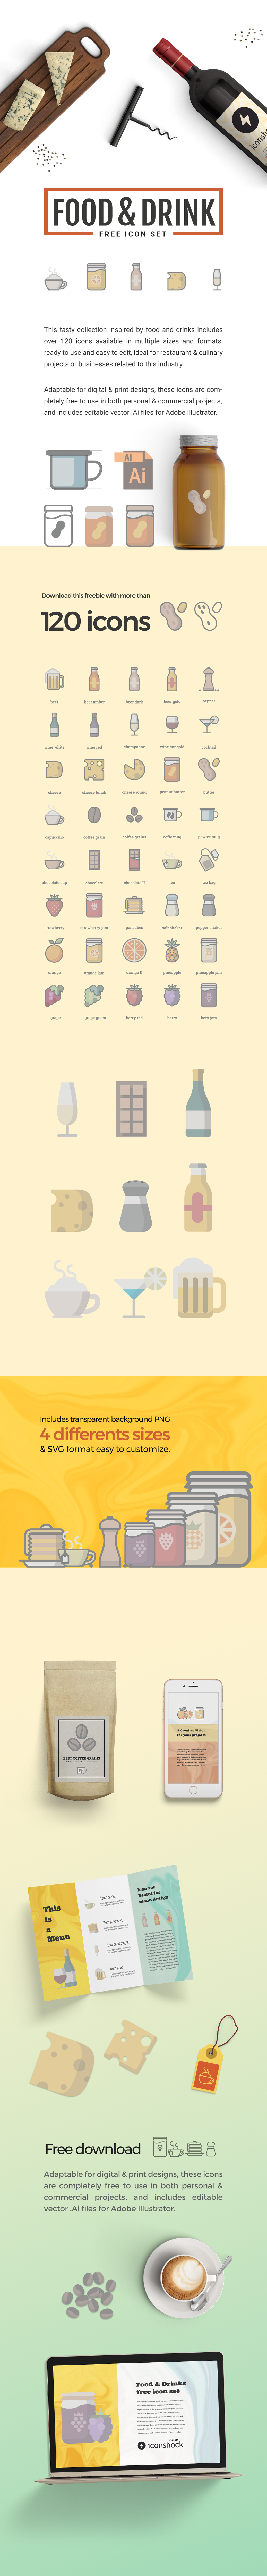 food_and_drink_icon_set